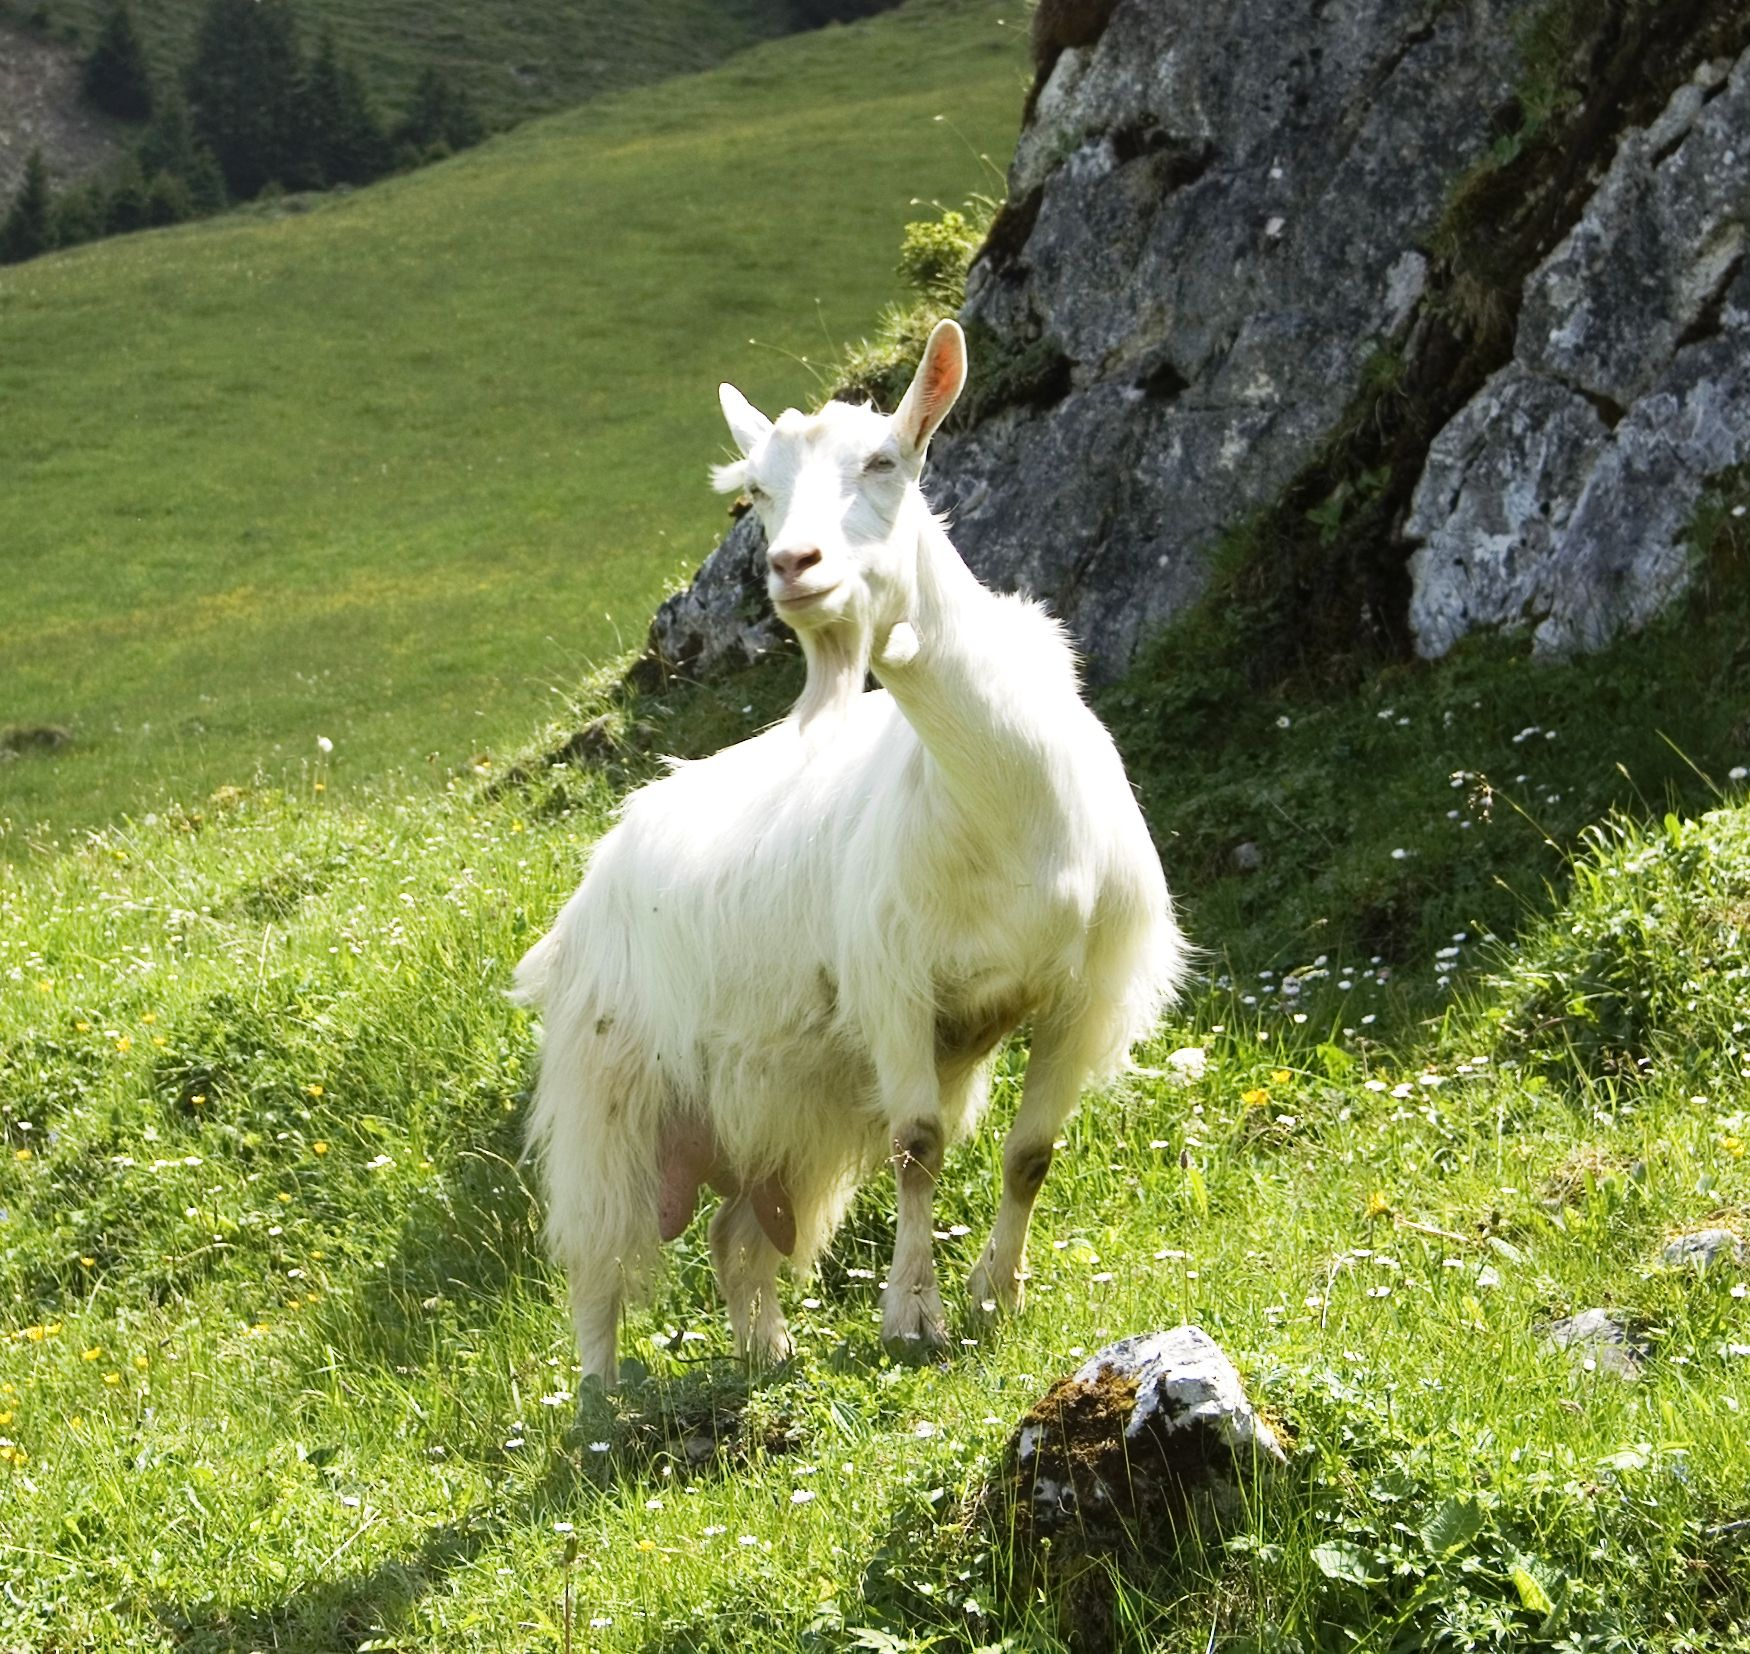 Appenzell goat (French Chèvre d'Appenzell, German